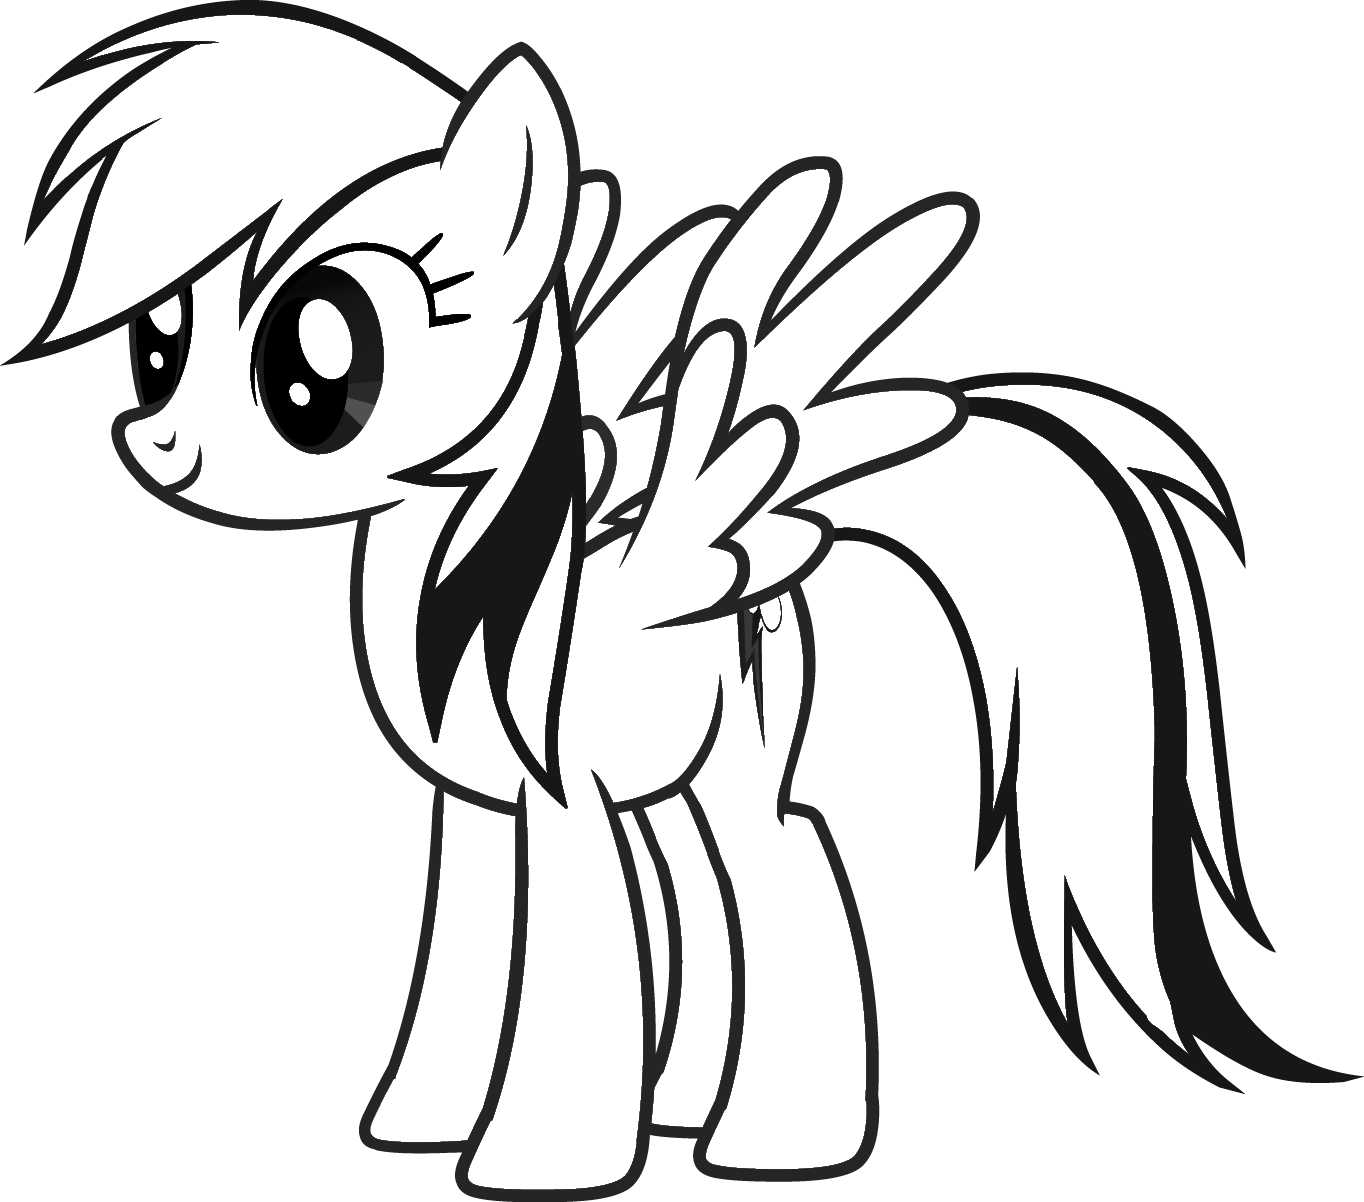 coloring pages of my little pony friendship is magic hasbro and shout kids roundup my little pony coloring page of my magic pony coloring little pages friendship is